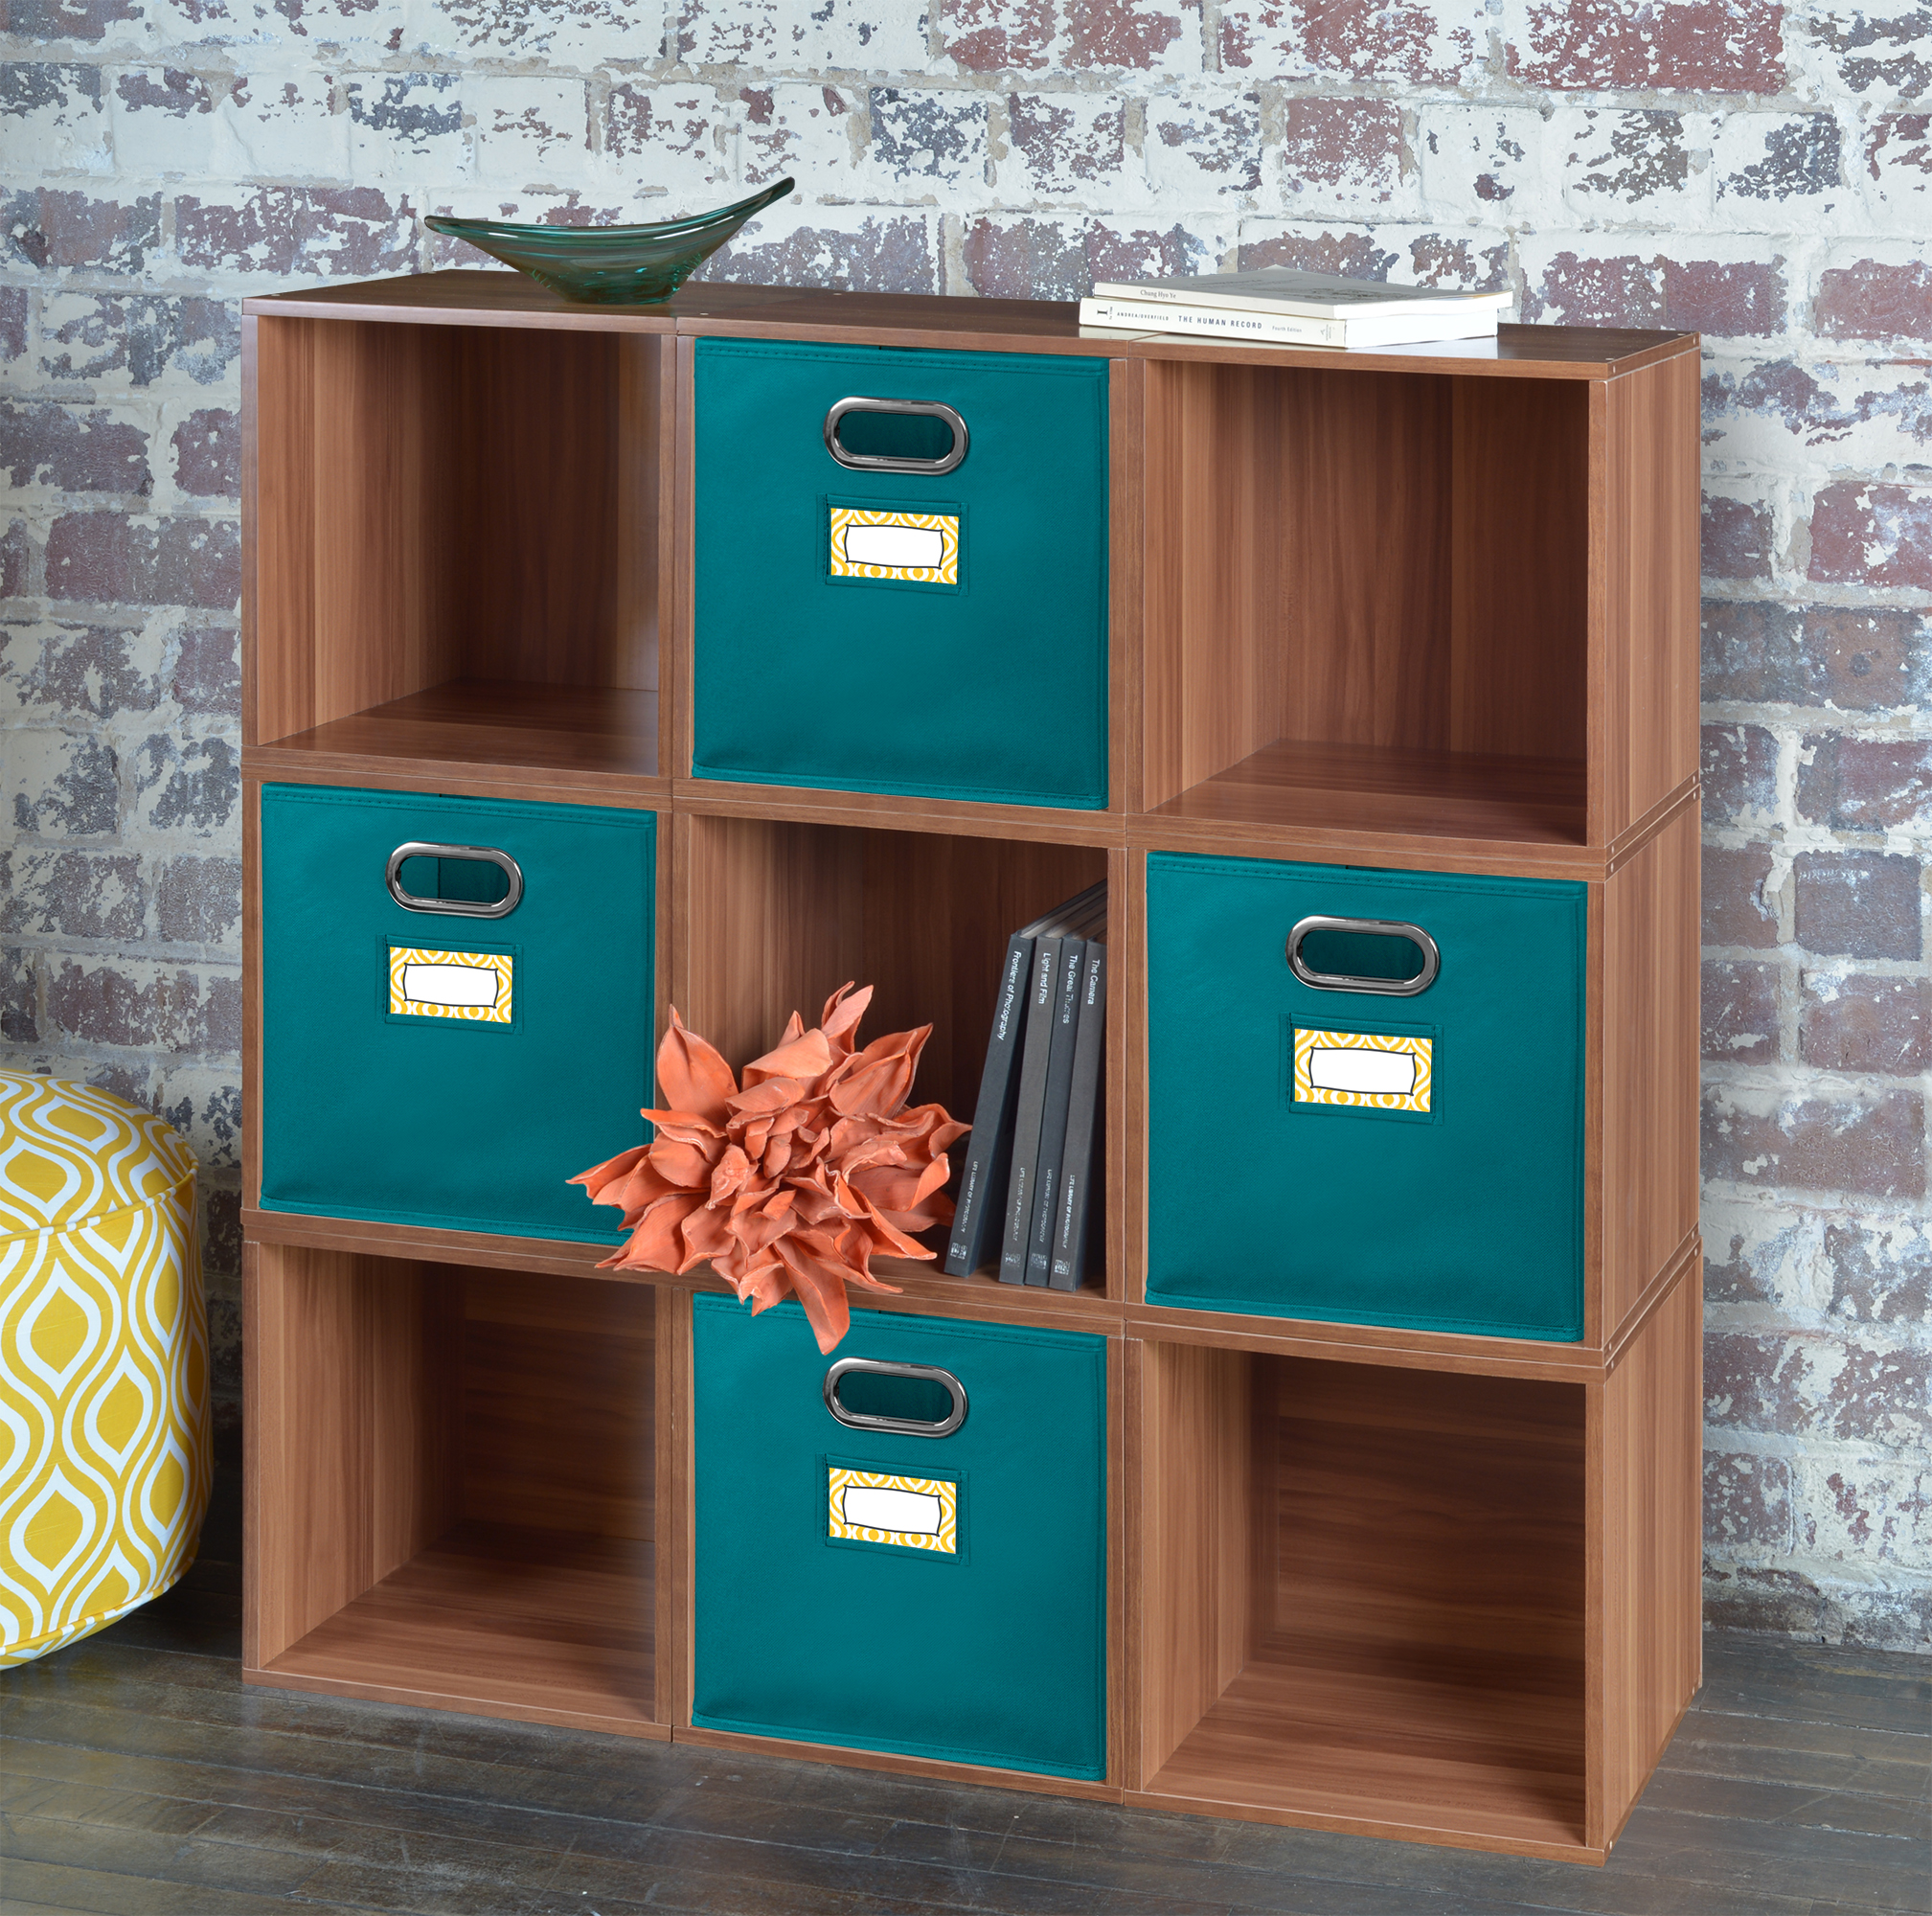 Niche Cubo Set of 4 Foldable Fabric Storage Bins- Teal